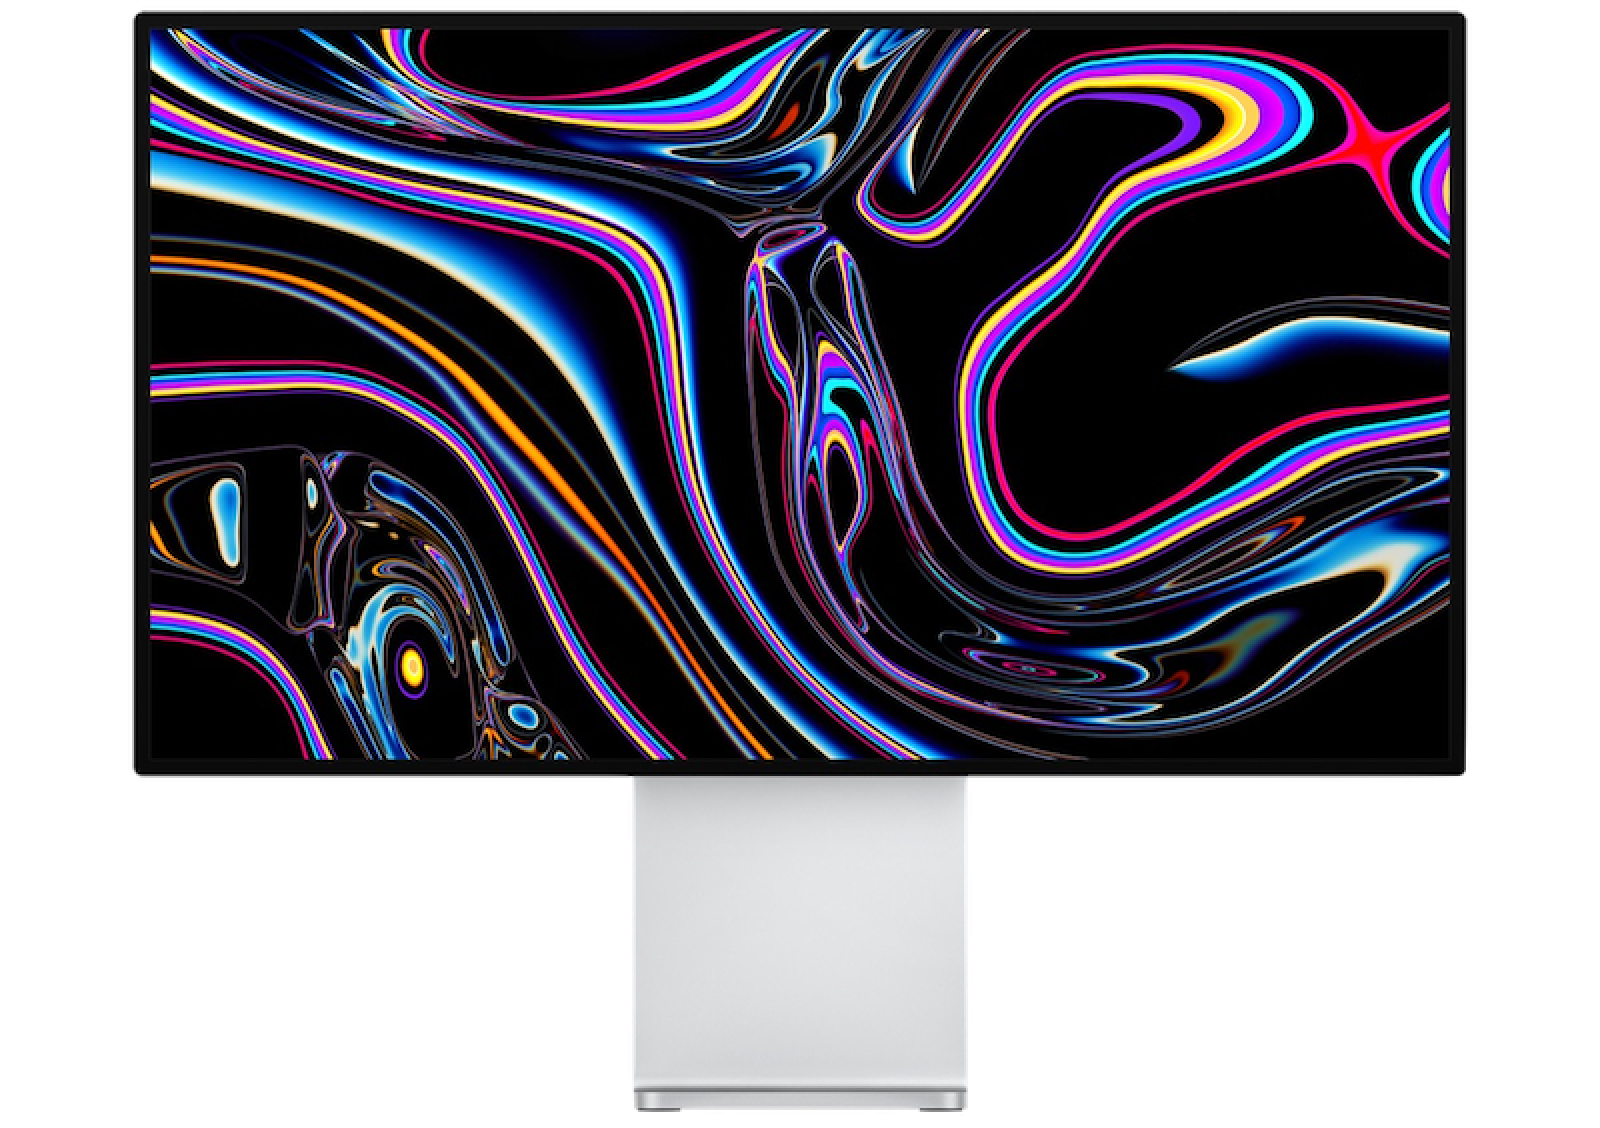 apple_pro_display_xdr_roundup_header-800x564.png